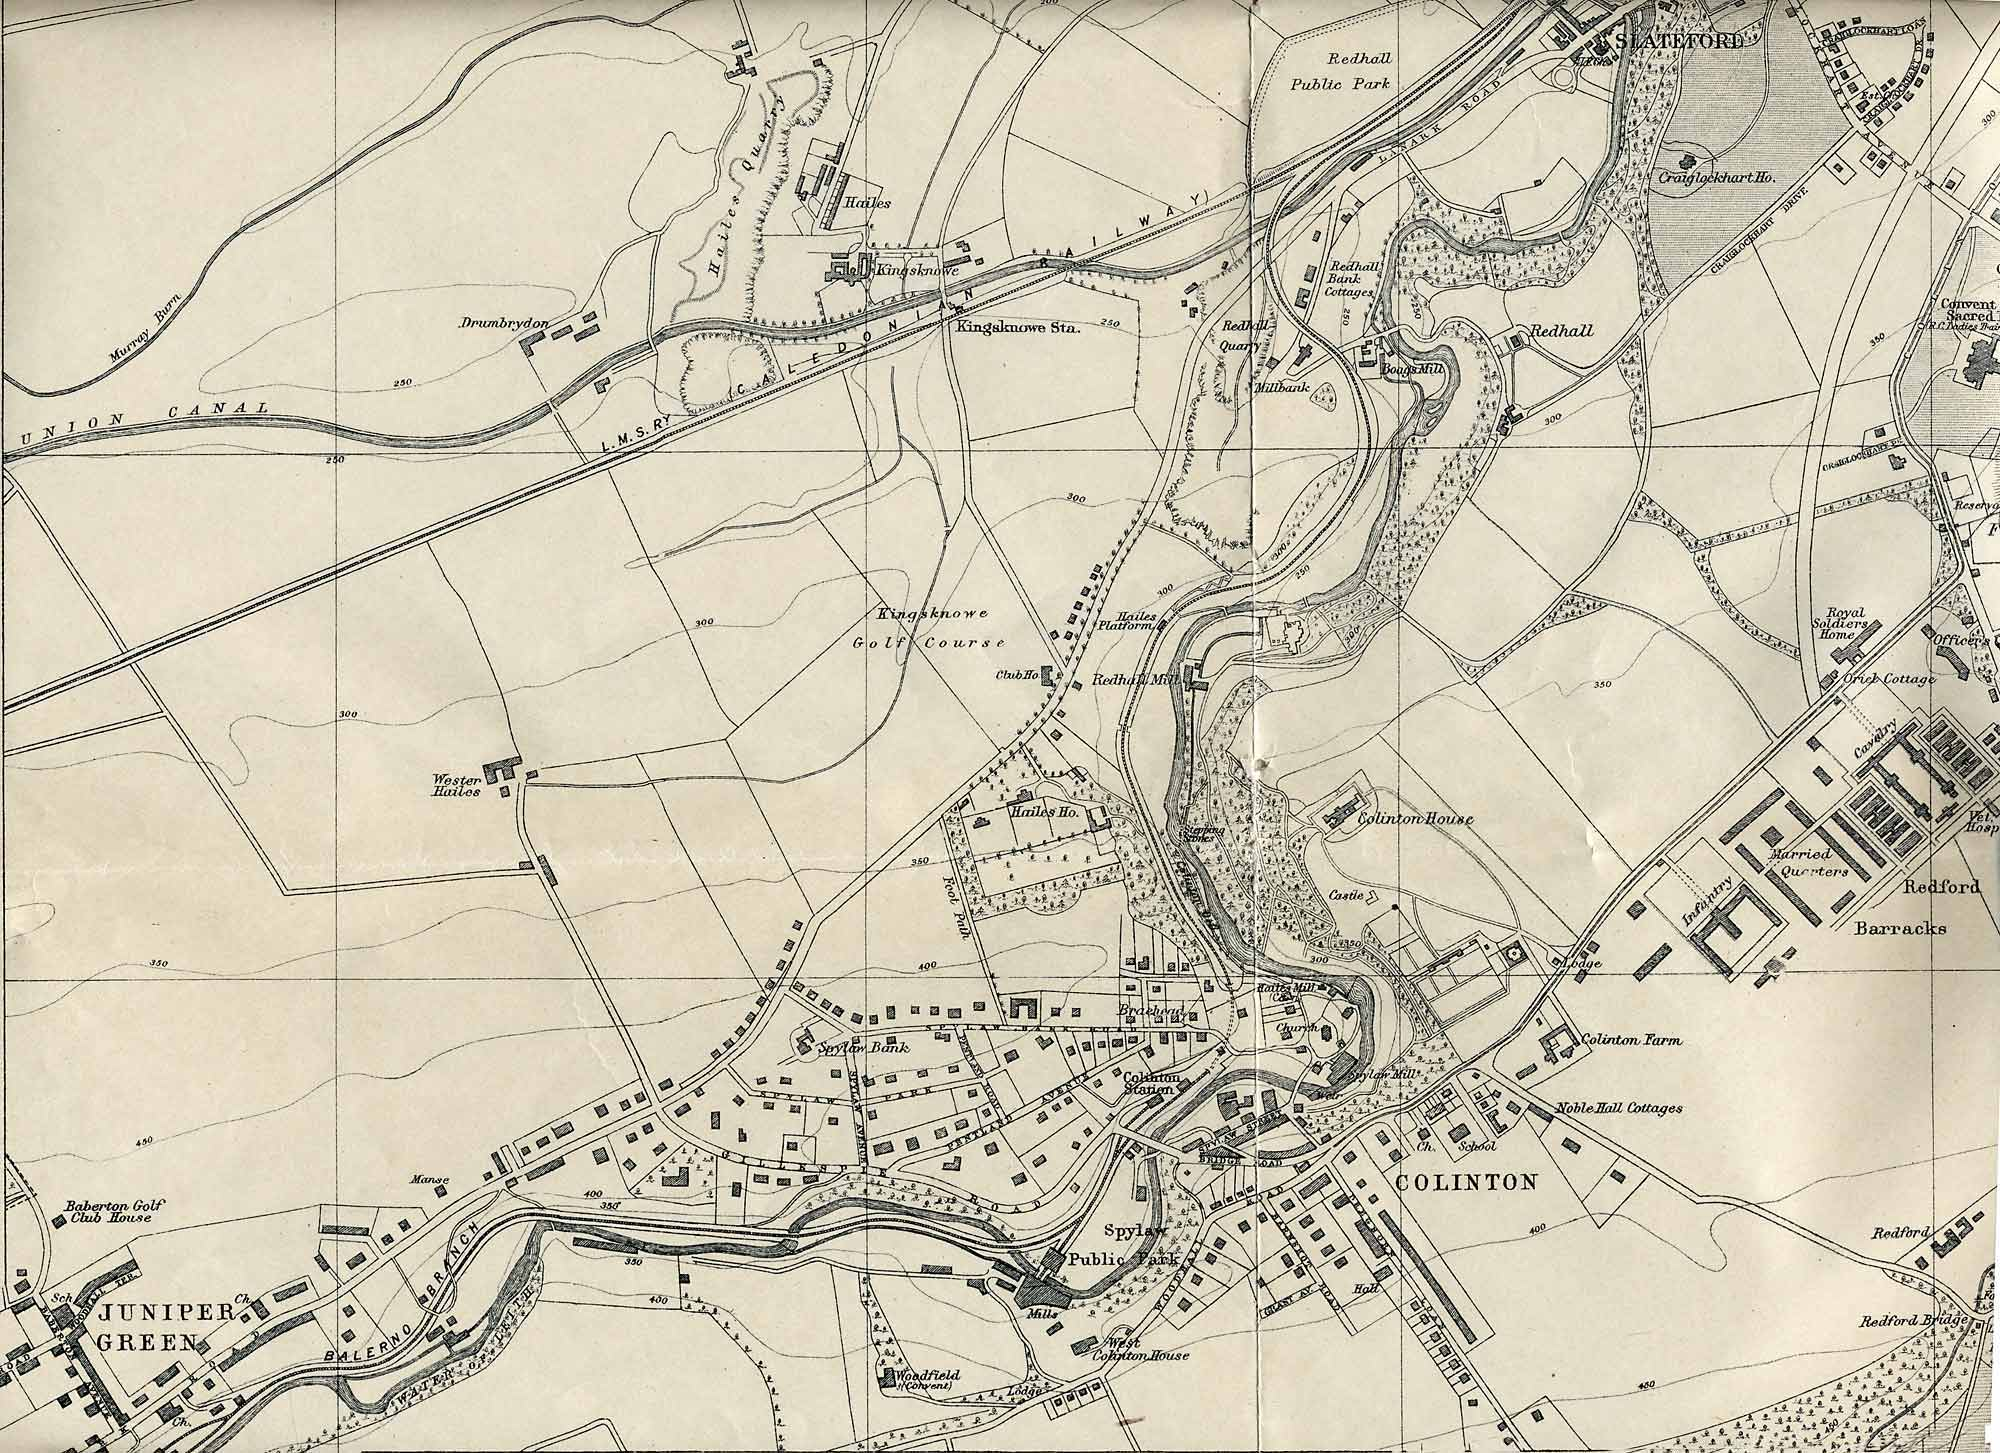 Edinburgh and Leith map, 1925  -  Juniper Green and Slateford section  -  Enlarged